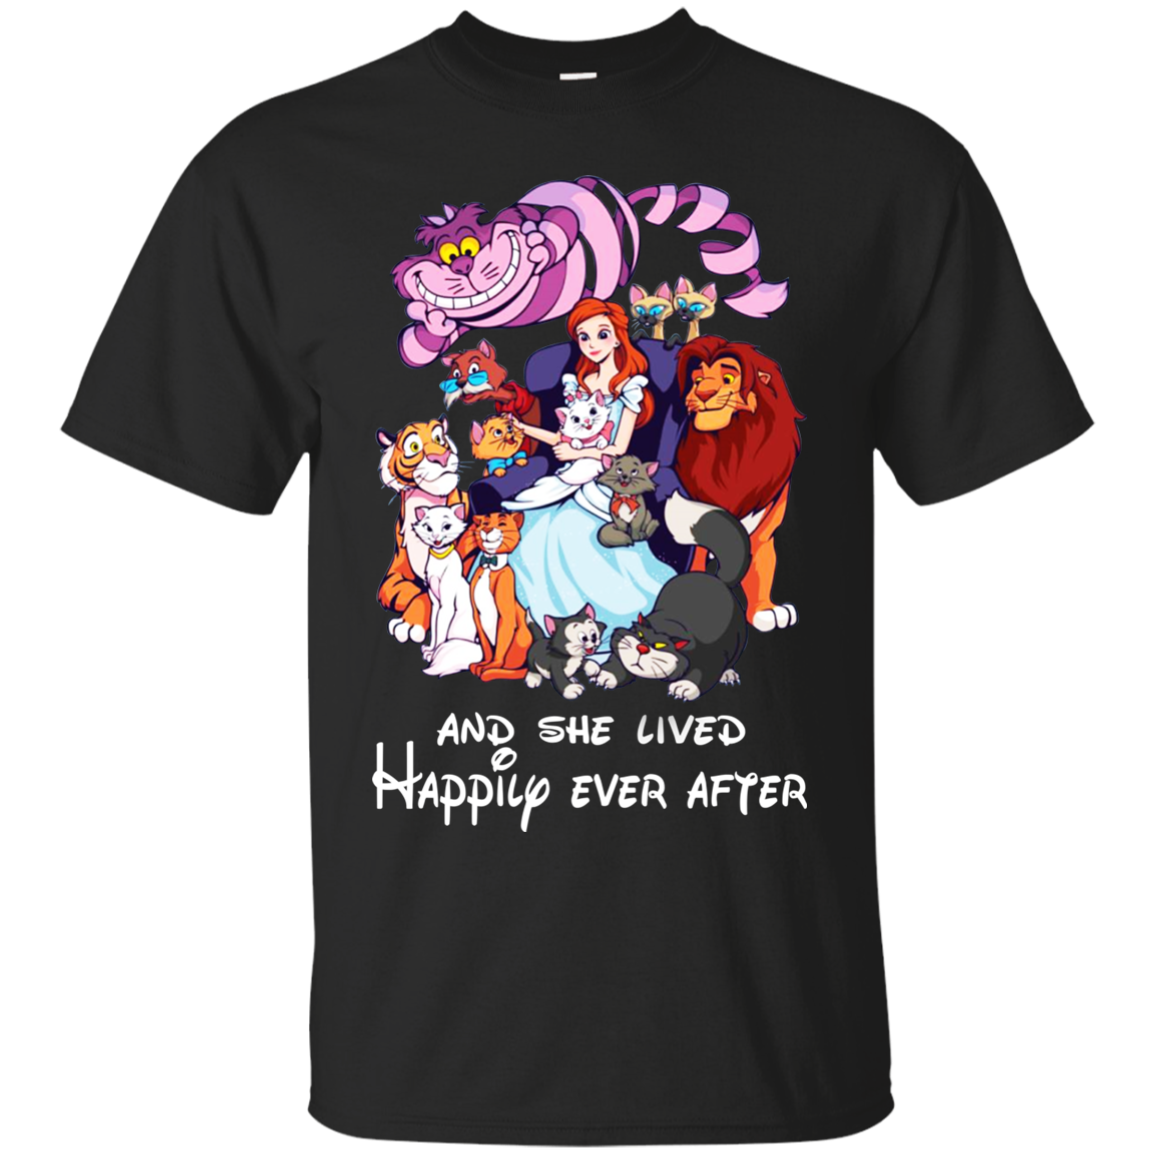 And She Lived Happily Ever After Shirt, Hoodie, Tank